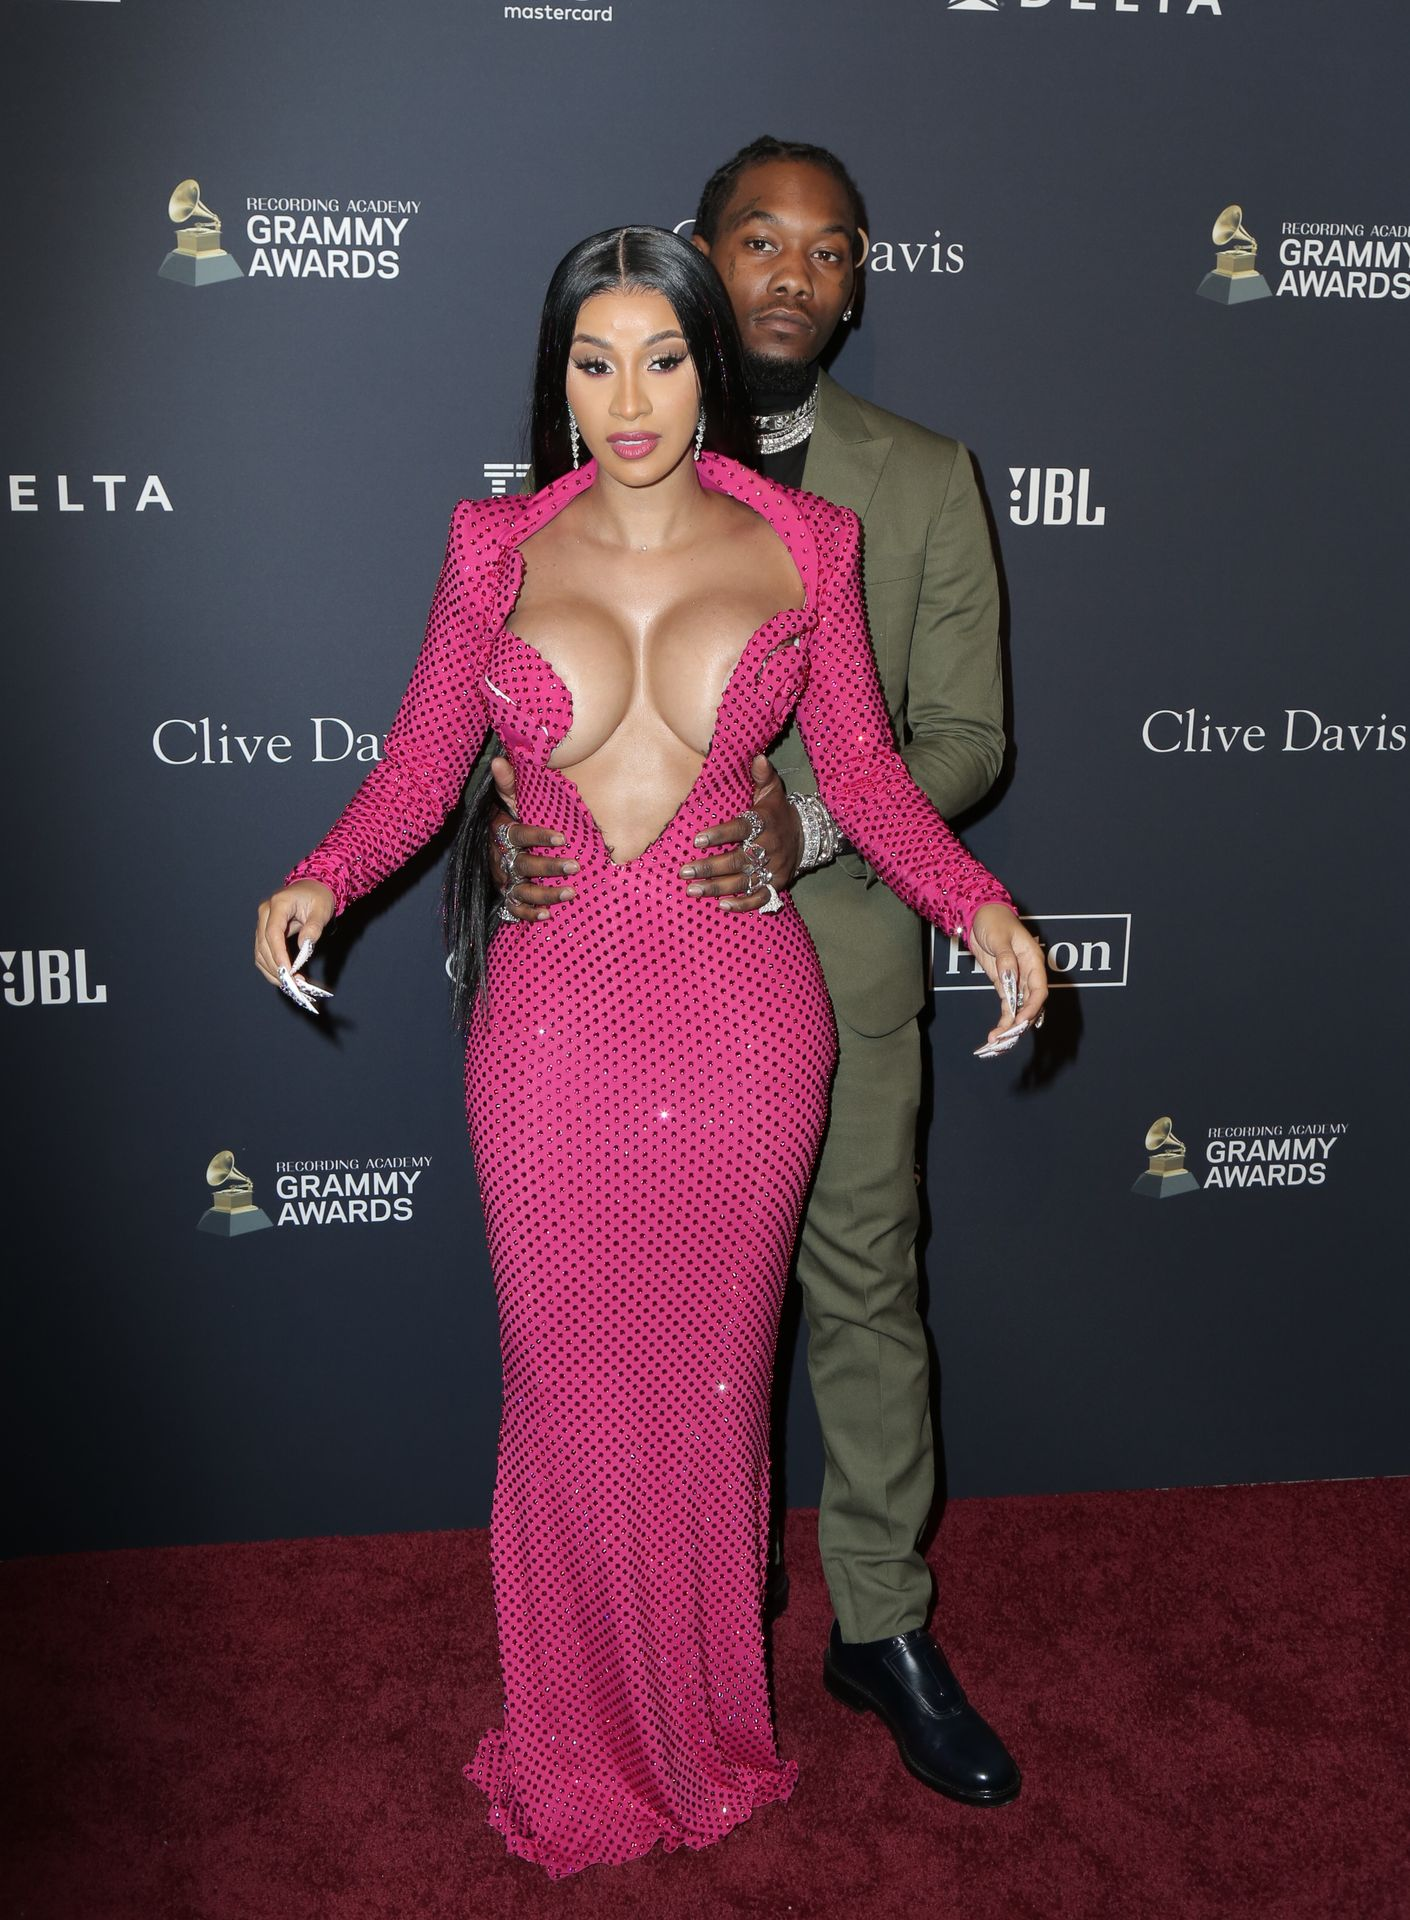 Offset Covers Cardi B's Boobs To Avoid Wardrobe Malfunction At Clive Davis Pre Grammy Party 0076